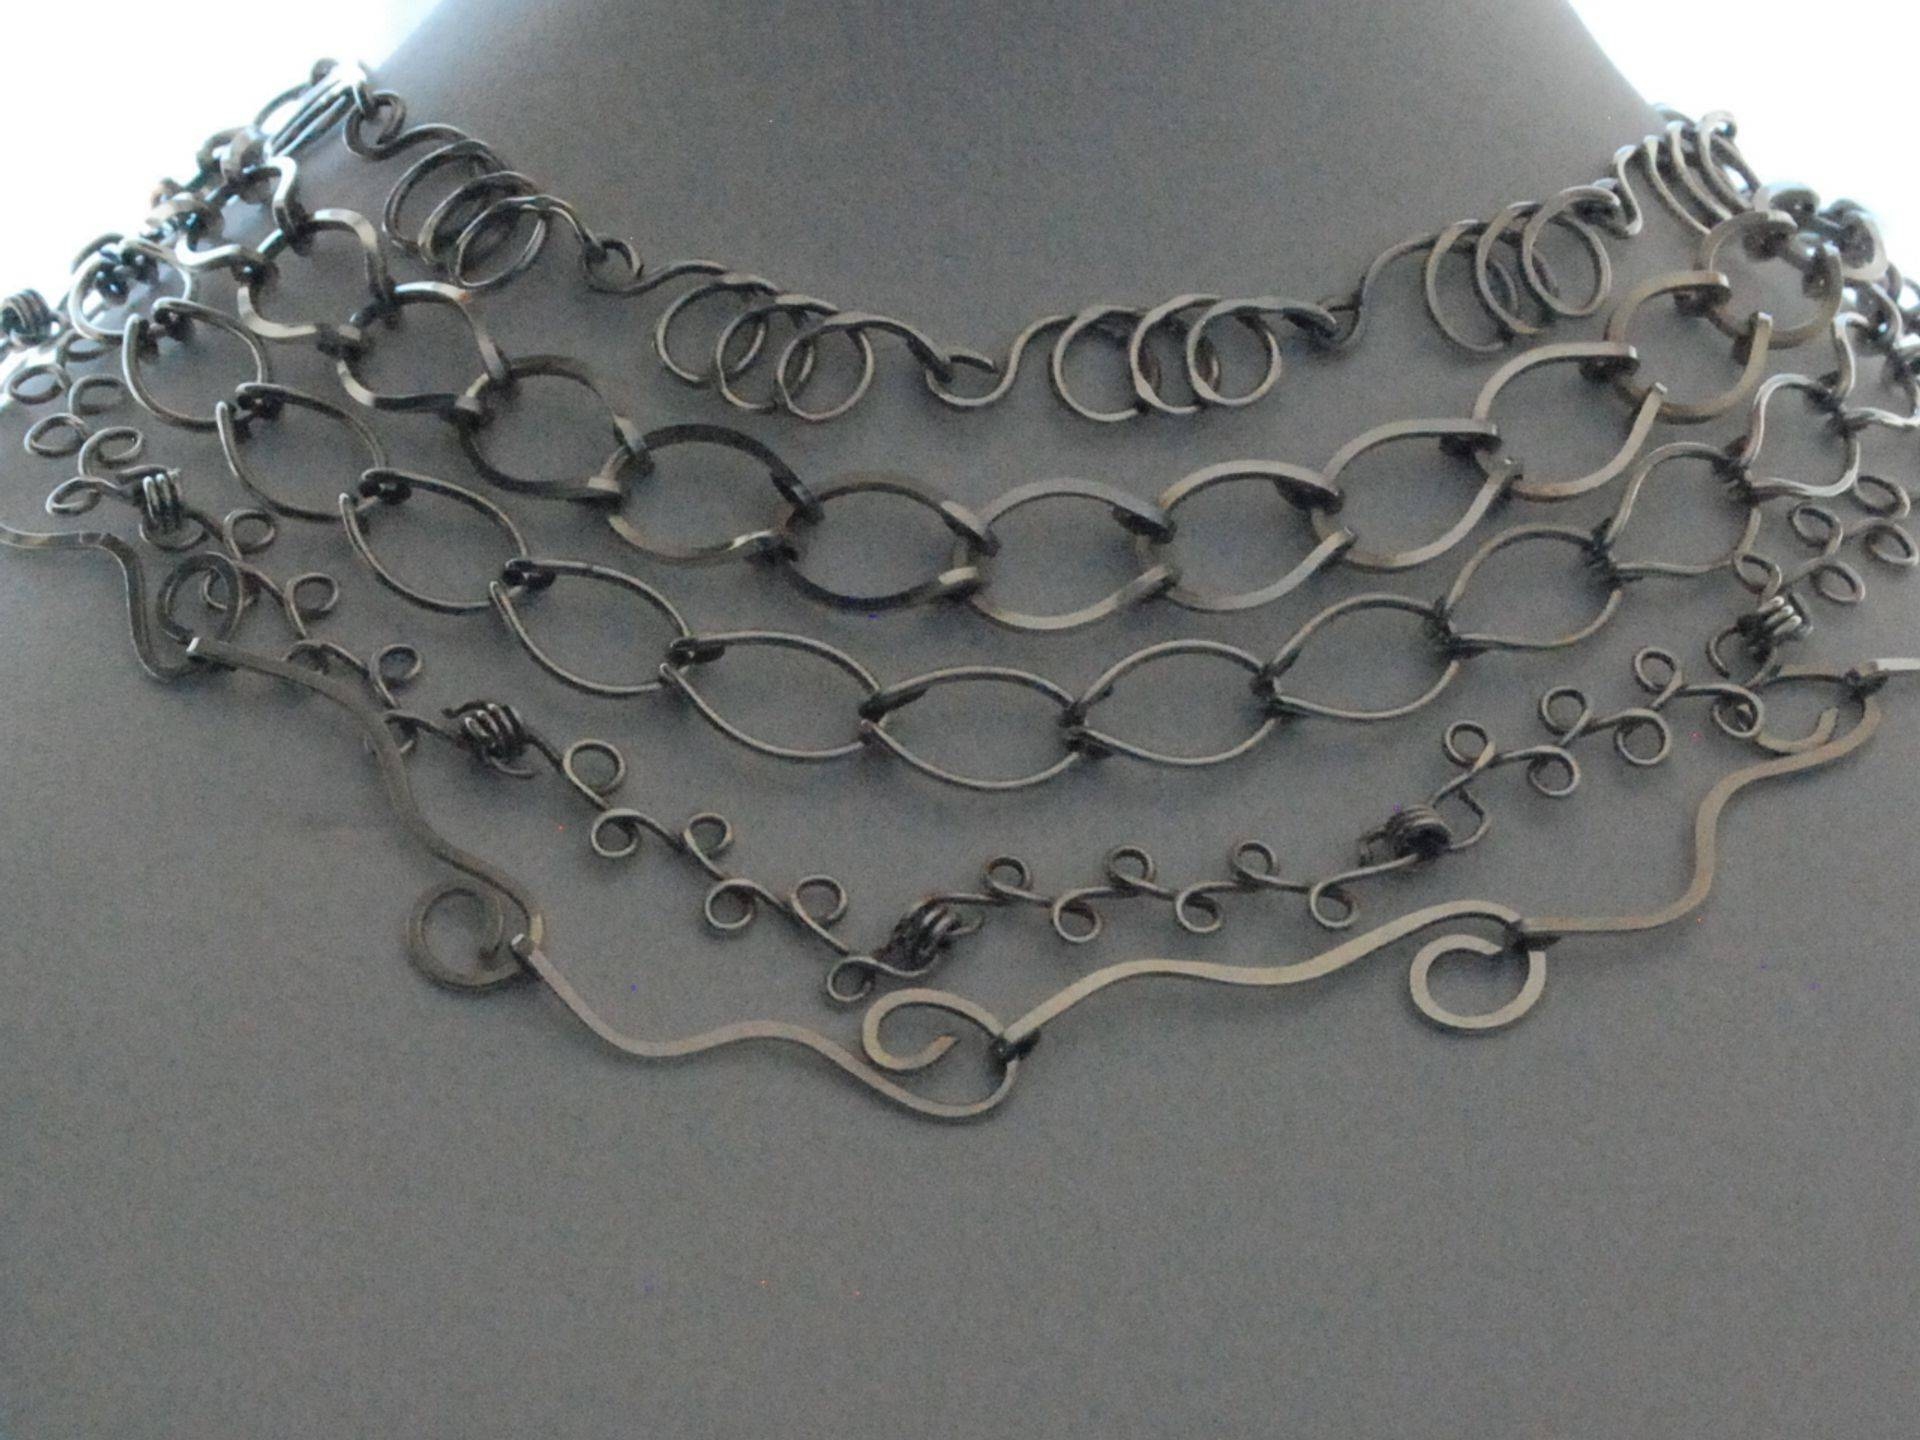 Wire Wrap Chains By Marcia Kertel Designs/ LeTrek Jewelry